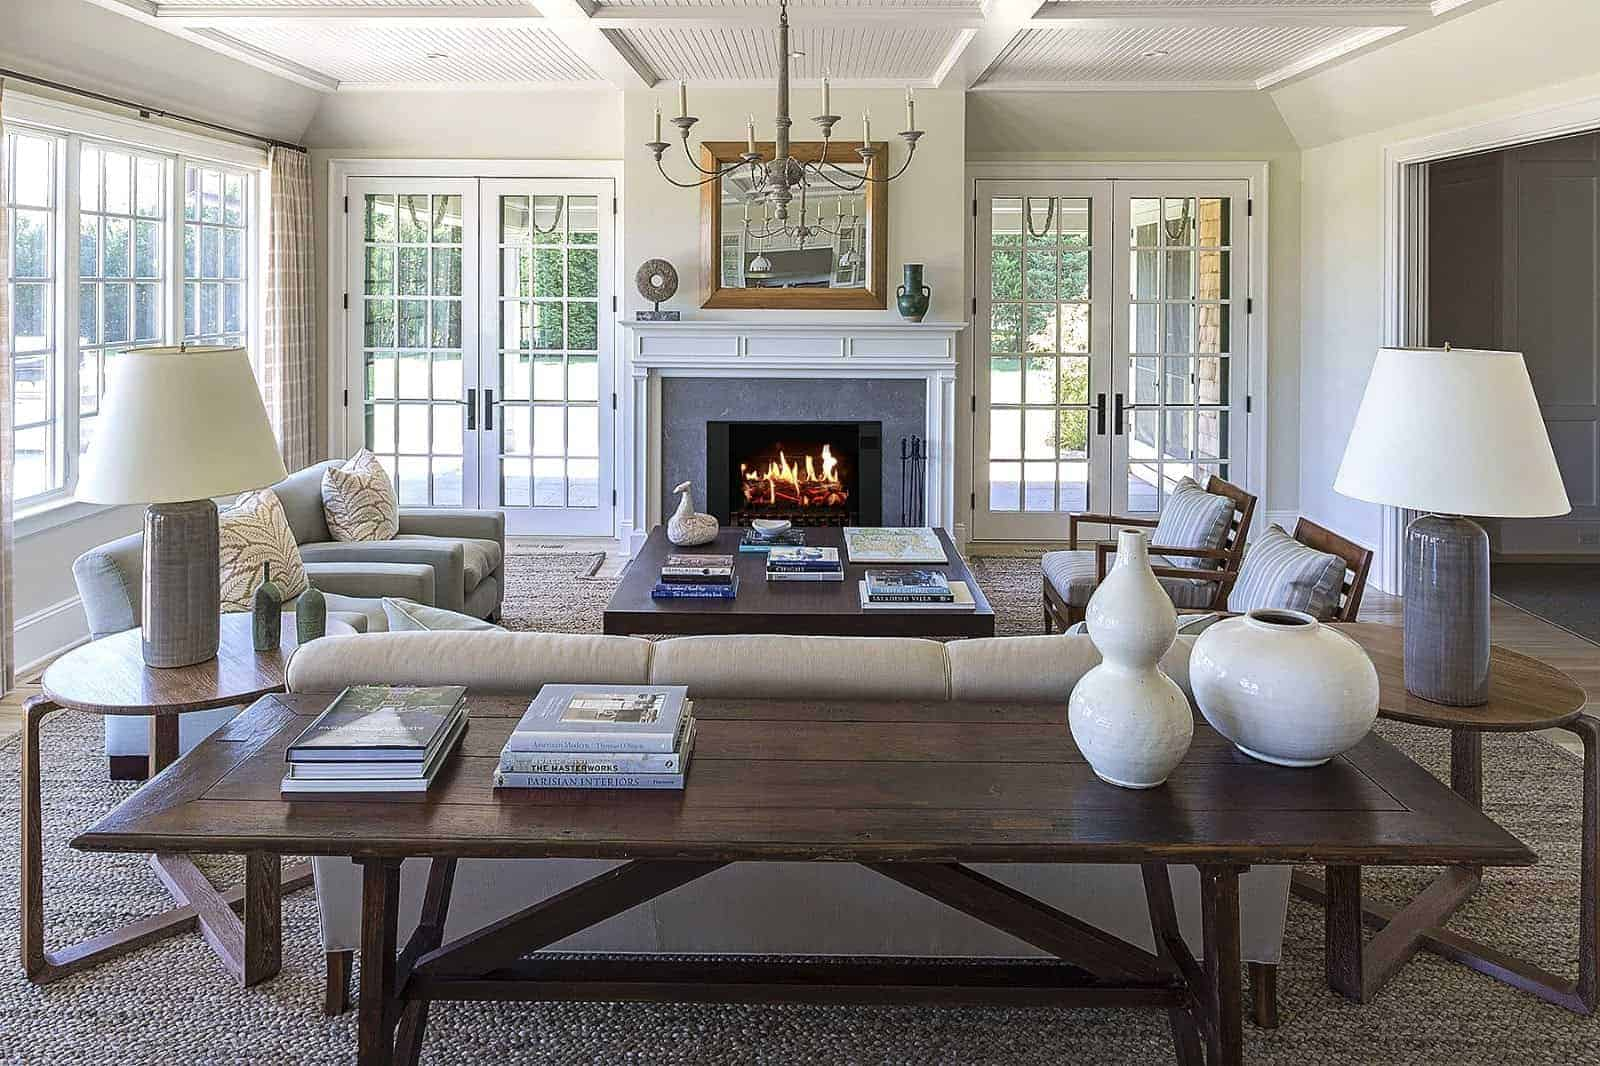 how much heat do electric fireplaces produce